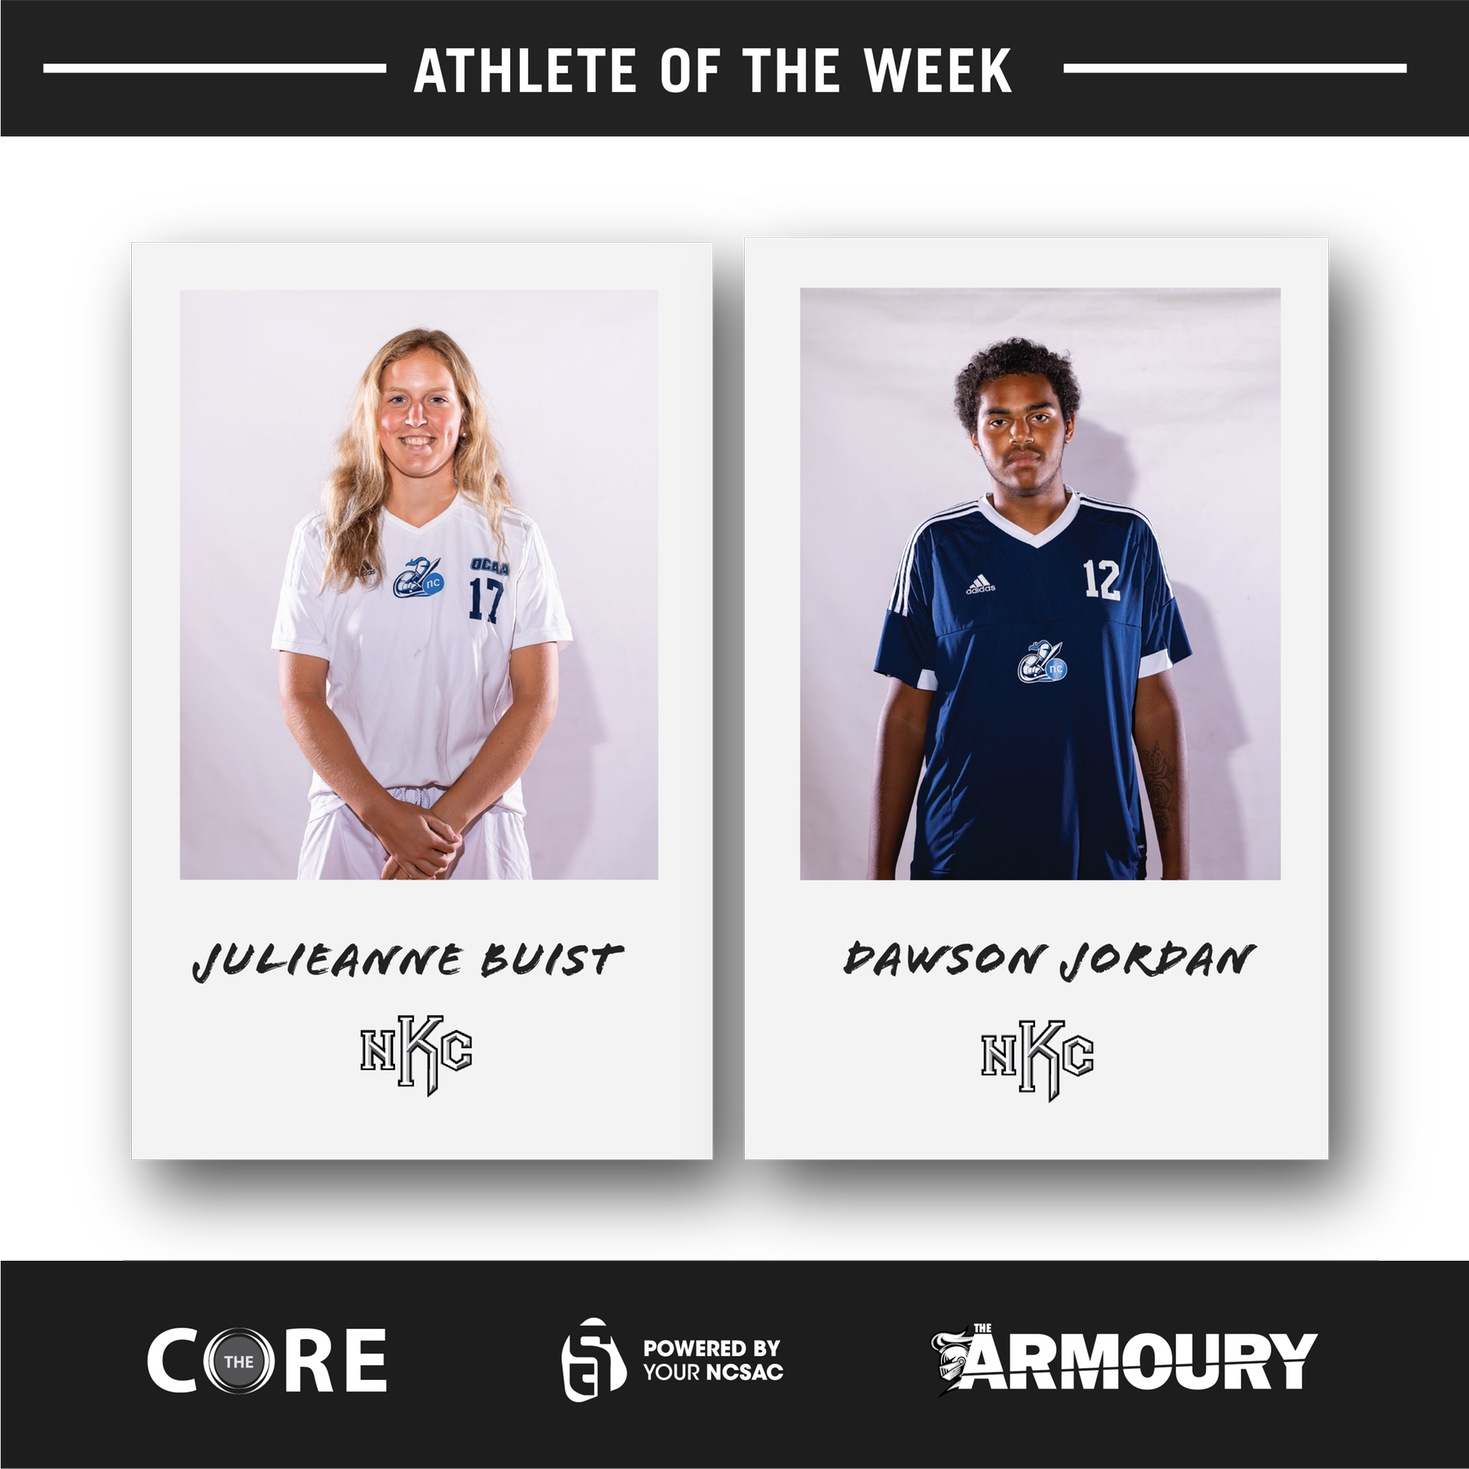 Dawson Jordan and Julieanne Buist Named NCSAC Athletes of the Week for October 7-11